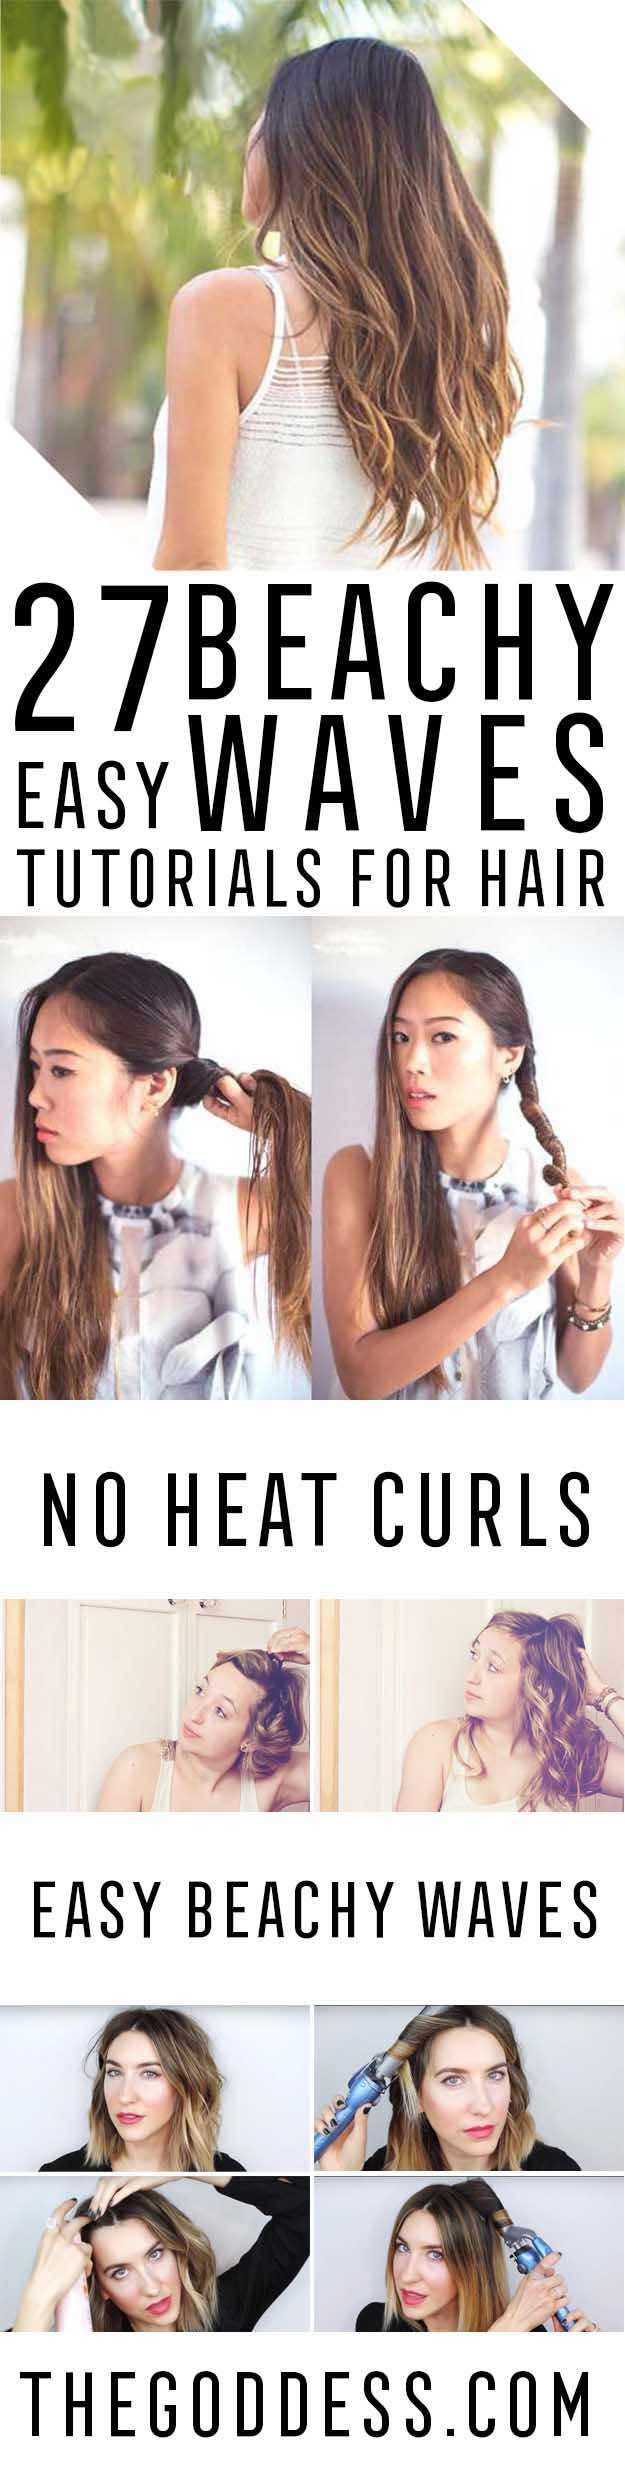 Easy Beachy Waves Tutorials for Hair - DIY And Easy Step By Step Tutorial For Short Hair, Medium Hair, Your Wedding, Prom, Graduation, Or Ladies Night.  Great For Spring, Summer, And Includes Tips For Flat Iron, No Heat, and Other Products and Hairdos - http://thegoddess.com/beachy-waves-tutorials-hair